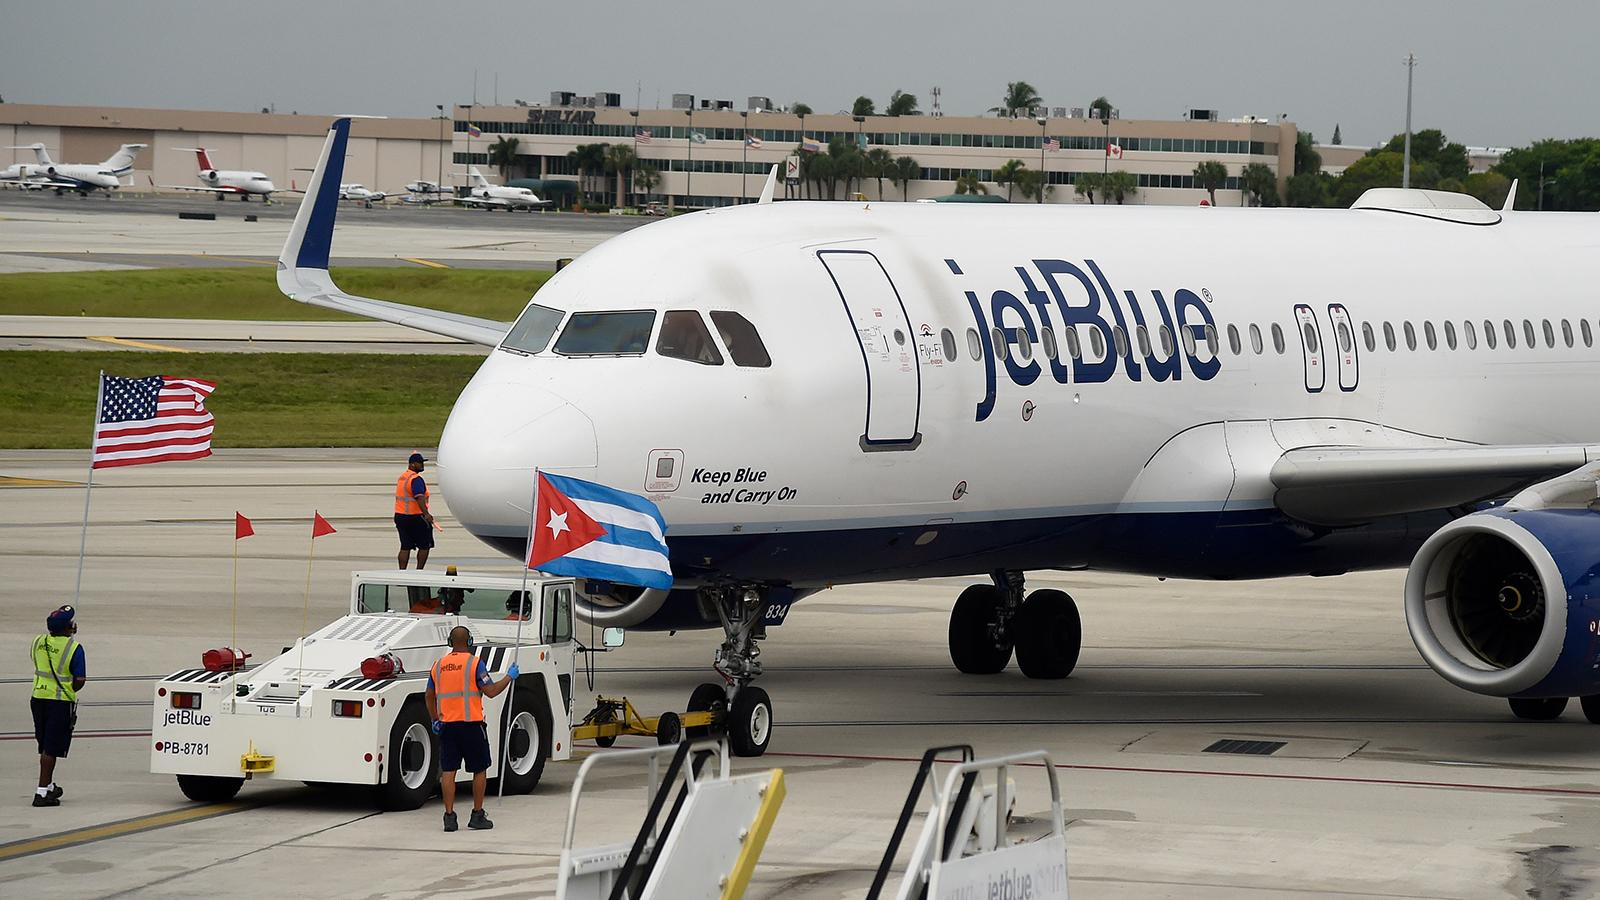 After 55 Years, Flights to Cuba Resume